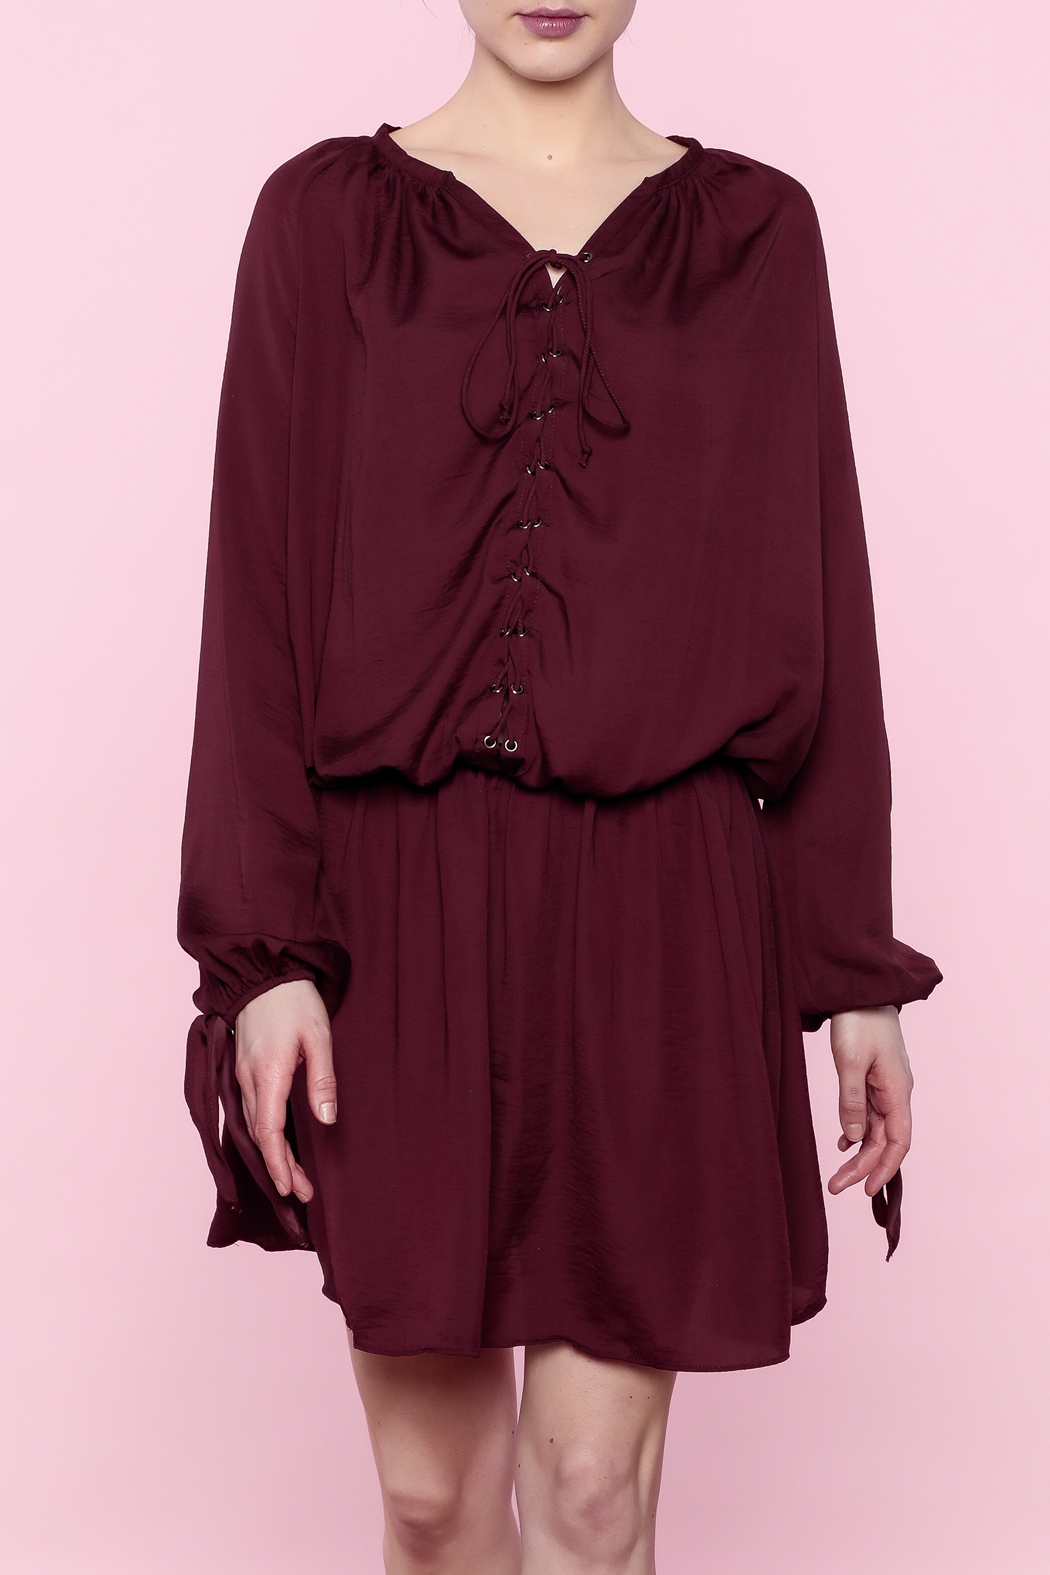 Do & Be Burgundy Lace-Up Dress - Front Cropped Image